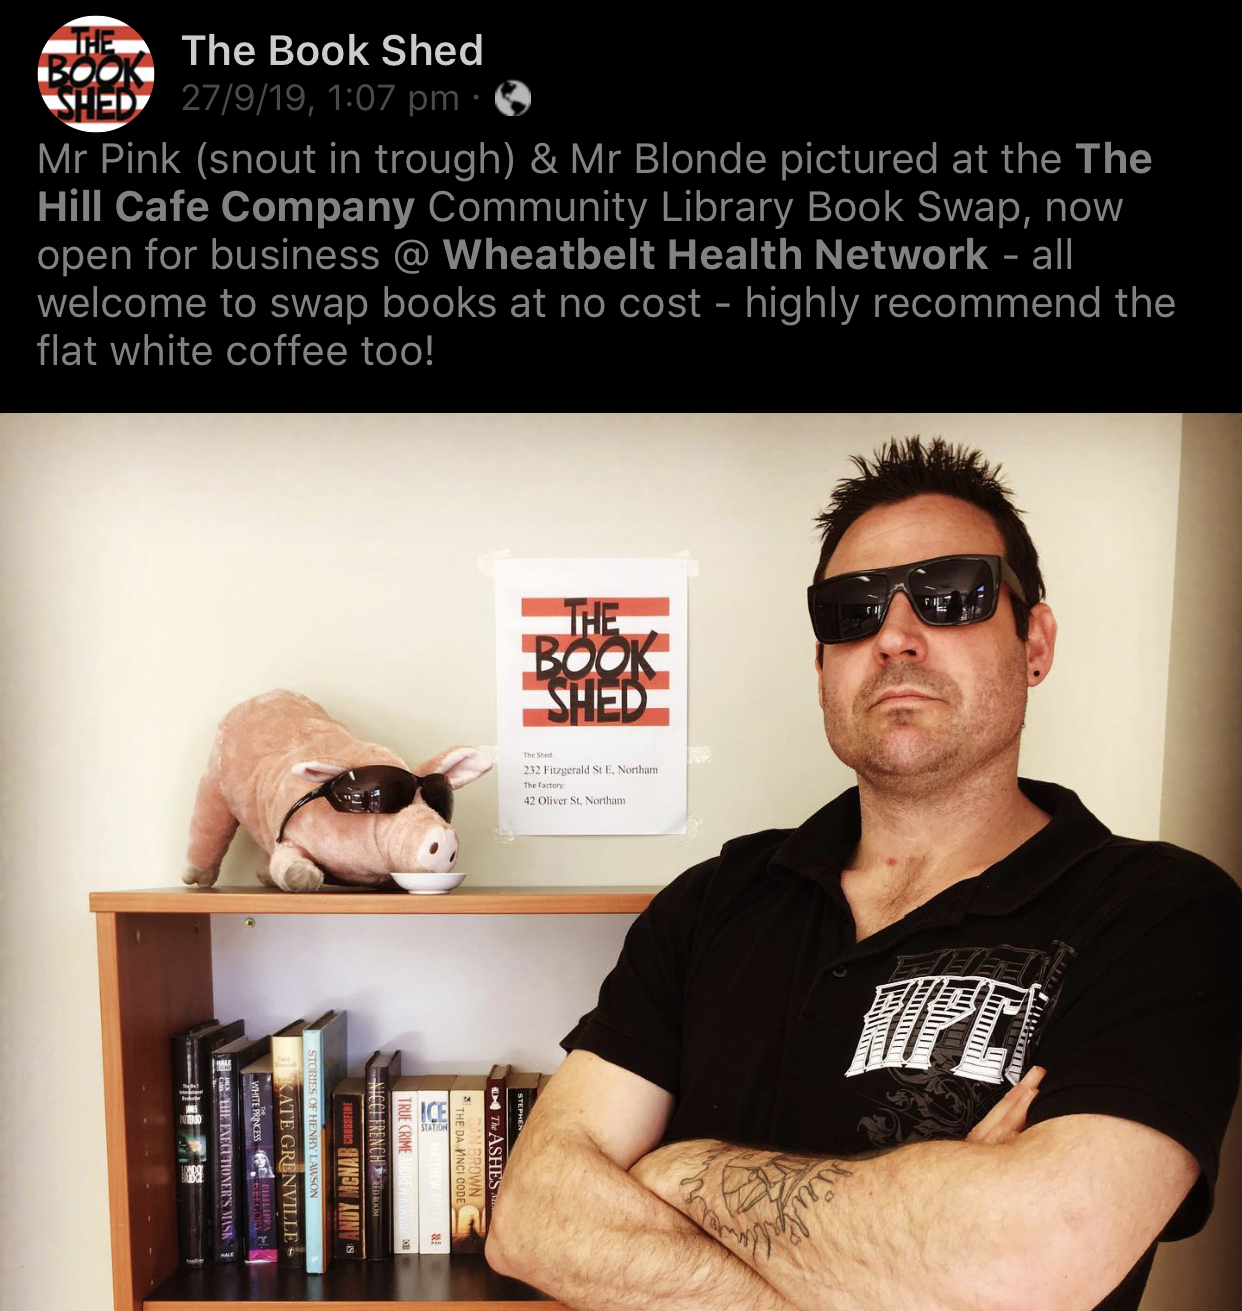 Wheatbelt Health Network